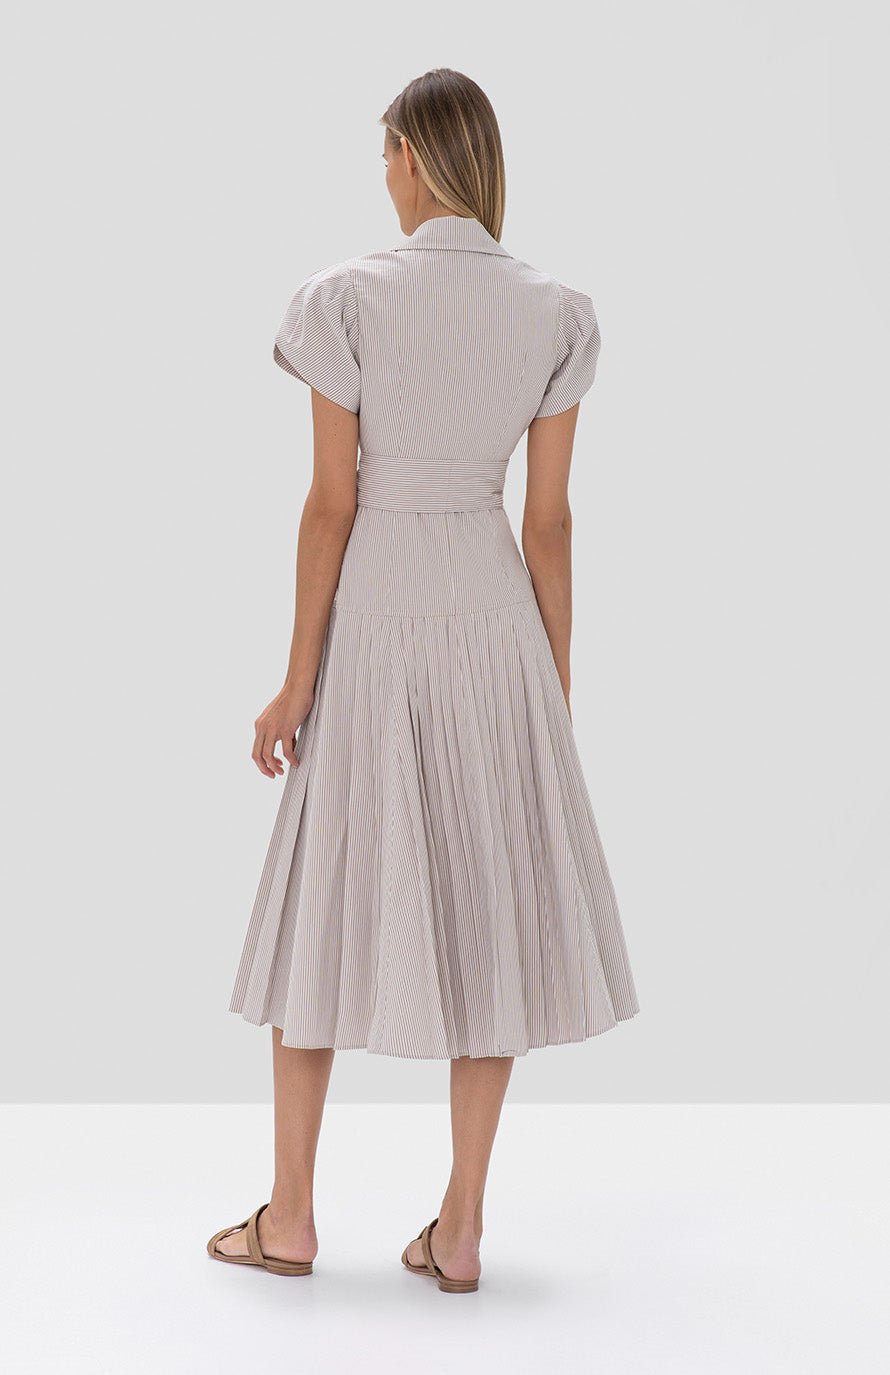 Amma Dress Textured Tan Stripes - Rear View